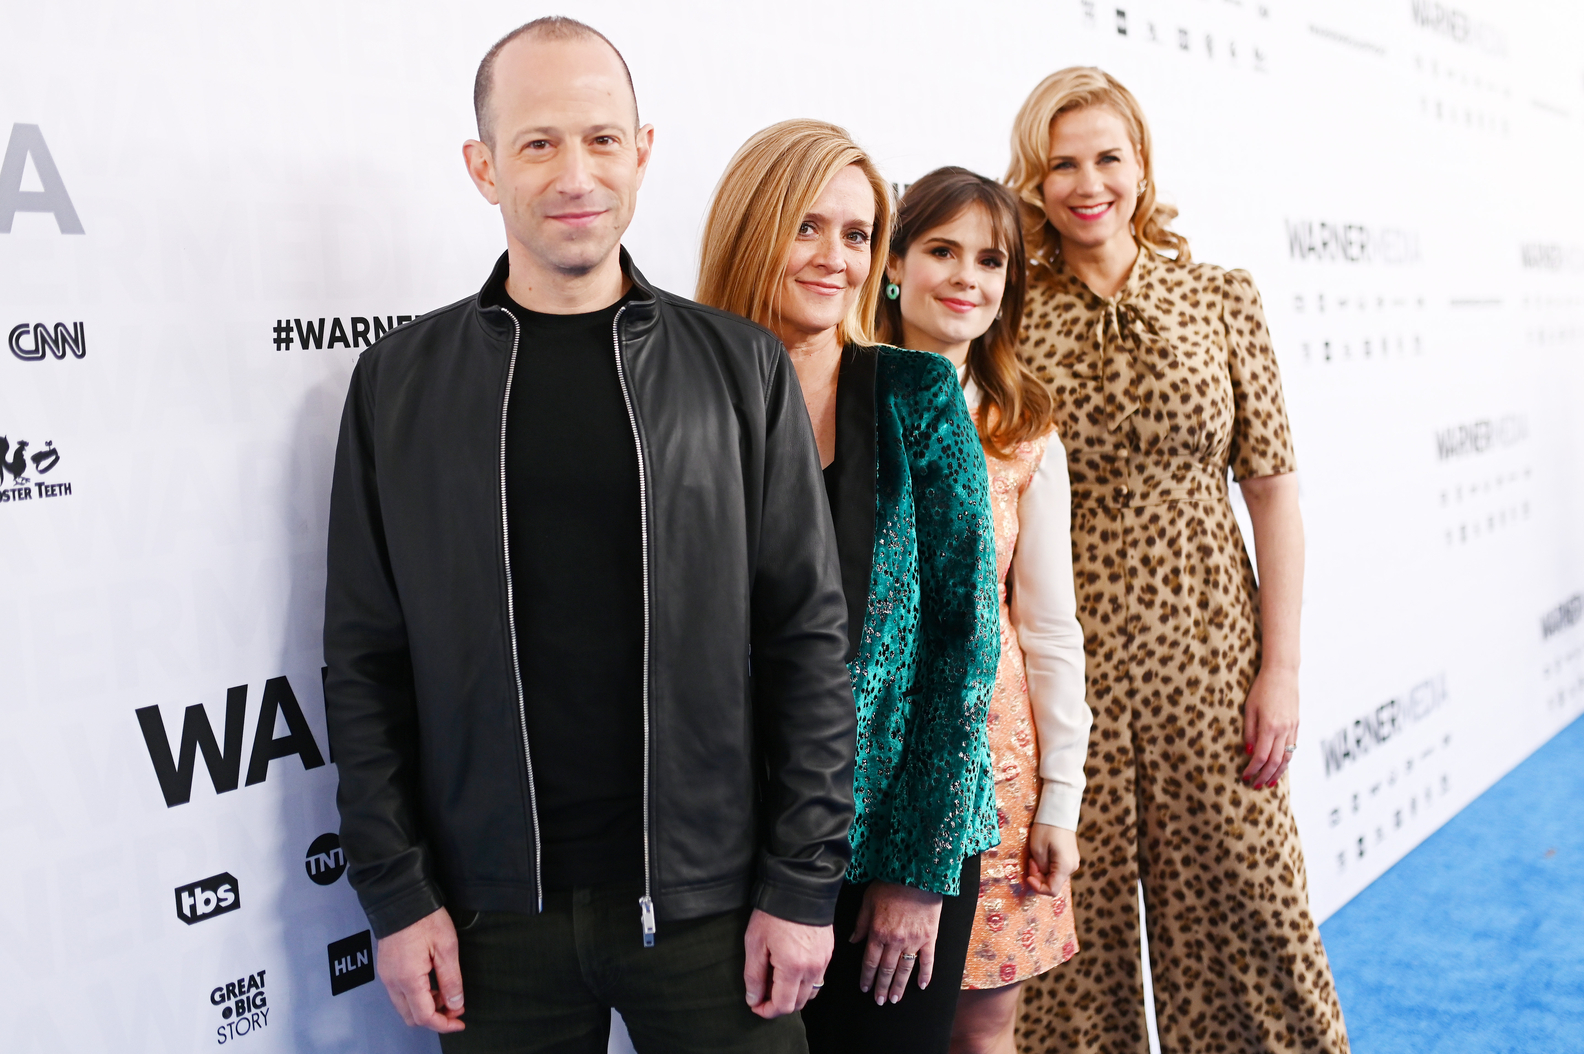 Mike Rubens, Samantha Bee, Amy Hoggart and Allana Harkin of TBS's Full Frontal with Samantha Bee on the red carpet at WarnerMedia Upfront 2019 at The Theater at Madison Square Garden on May 15, 2019 in New York City.